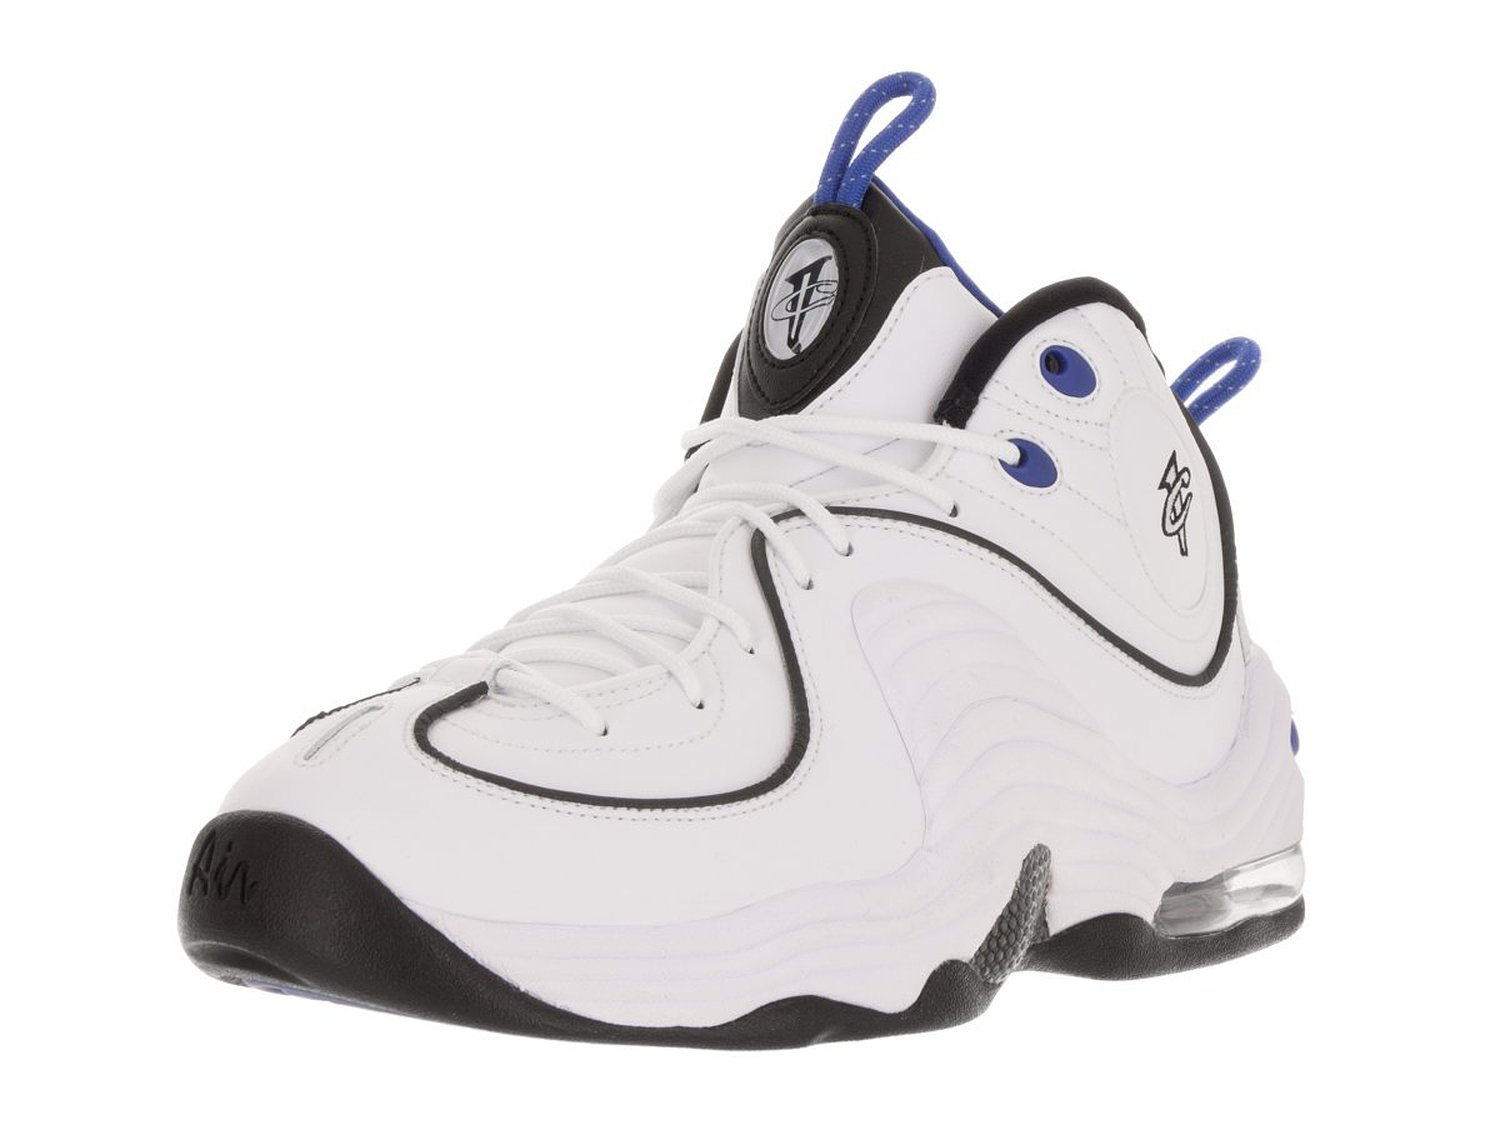 buy online 1195d 3979a Get Quotations · Nike Men s Air Penny II Basketball Shoe